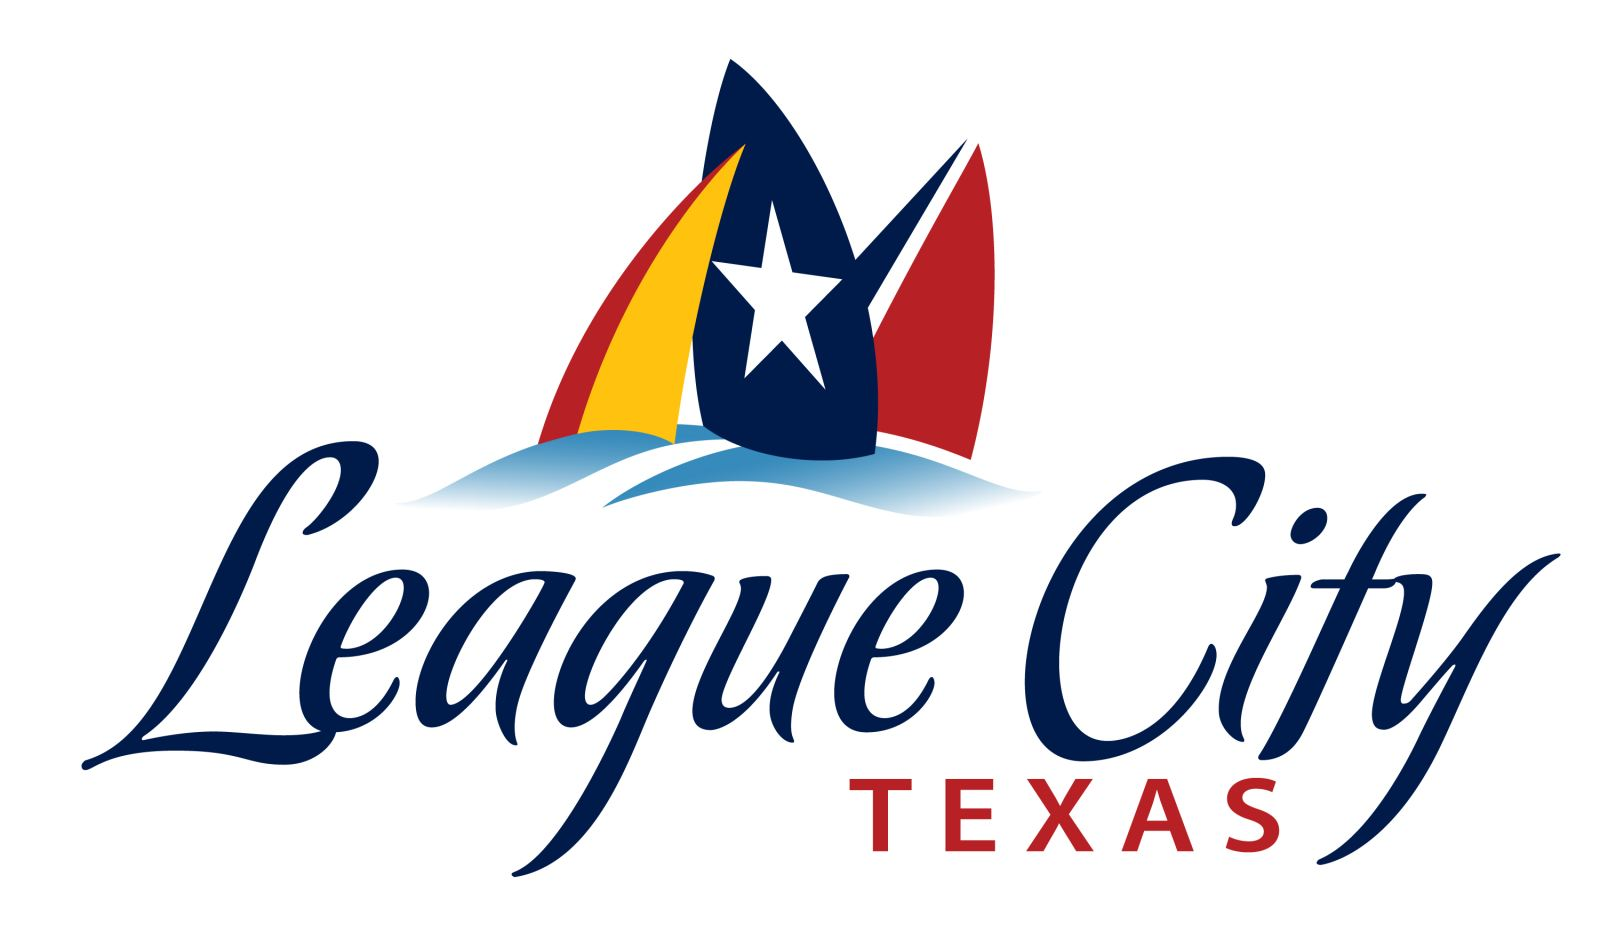 Swingers league city texas